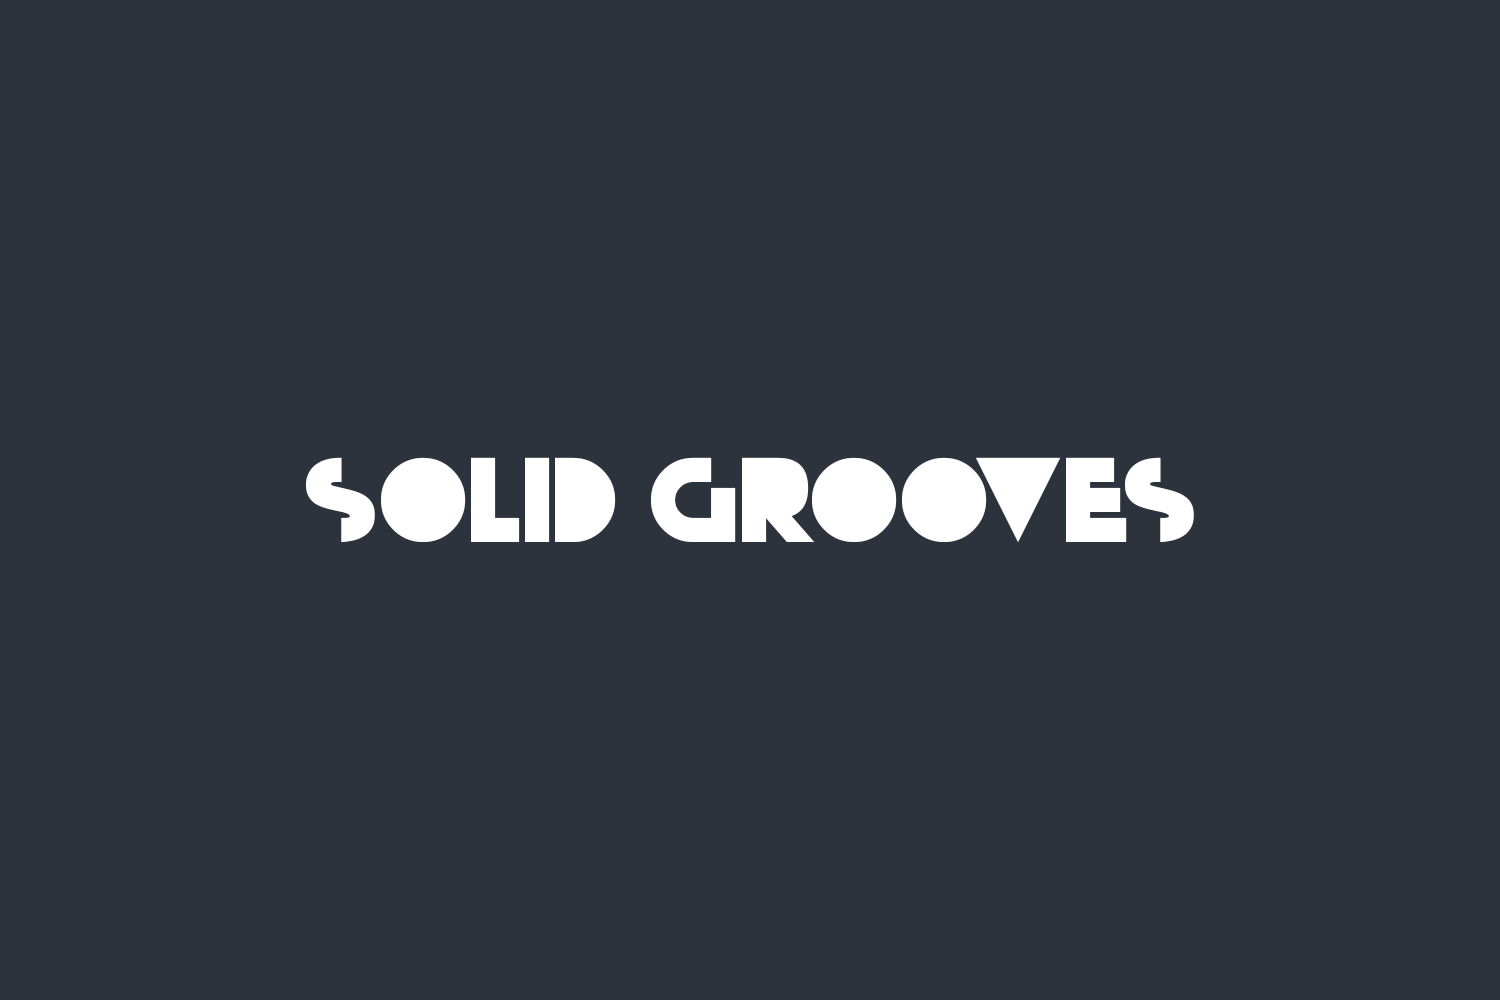 Solid Grooves Free Font